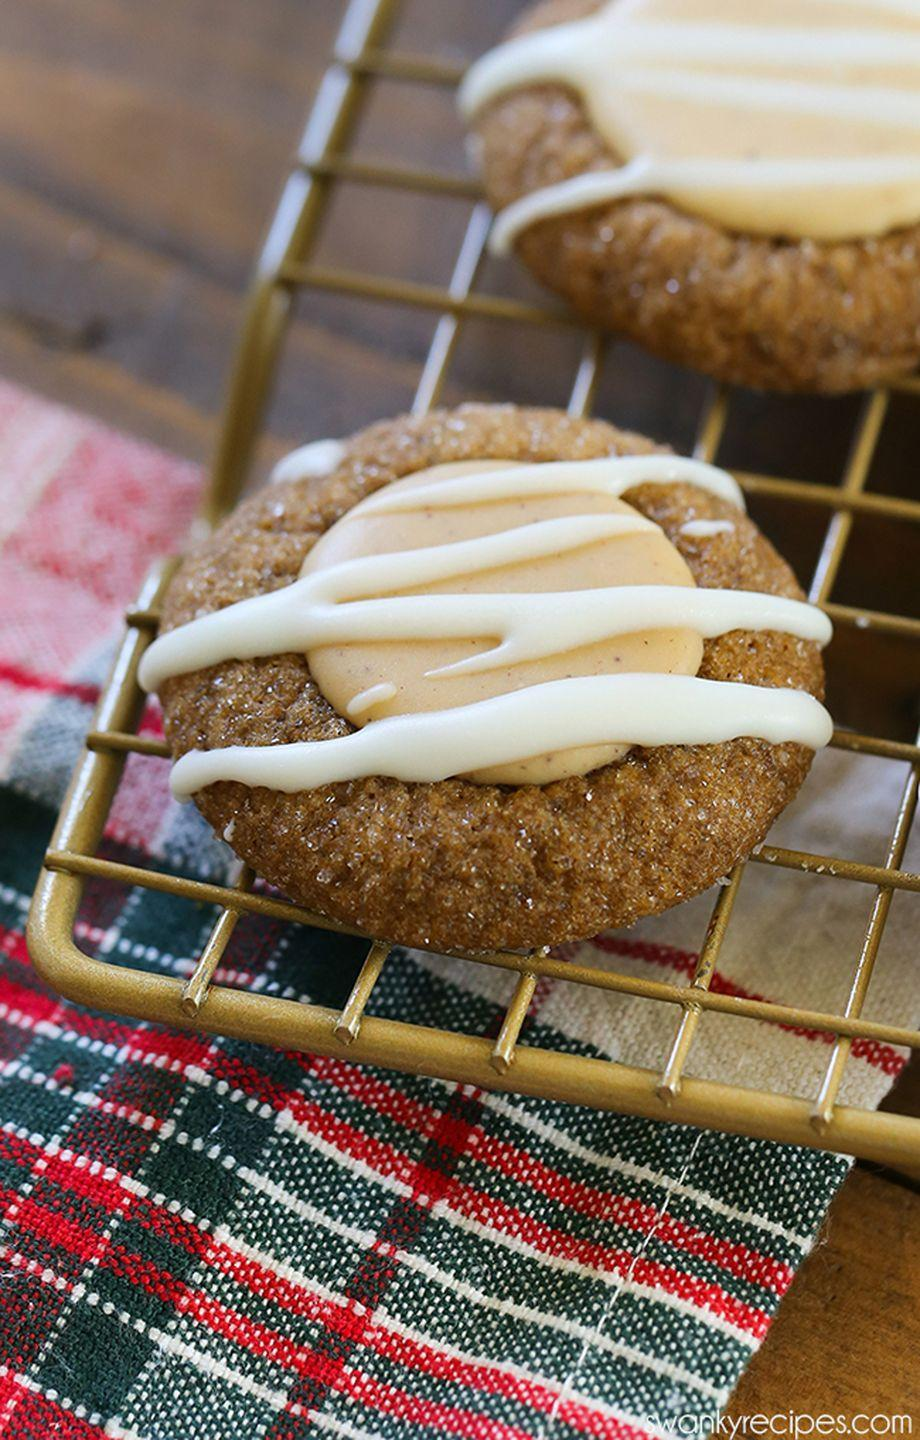 """<p>Upgrade your usual <a href=""""https://www.countryliving.com/food-drinks/g3604/gingerbread-cookie-recipes/"""" rel=""""nofollow noopener"""" target=""""_blank"""" data-ylk=""""slk:gingerbread"""" class=""""link rapid-noclick-resp"""">gingerbread</a> recipe with a melt-in-your-mouth spiced white chocolate filling.</p><p><strong>Get the recipe at <a href=""""http://www.swankyrecipes.com/gingerbread-thumbprint-cookies.html"""" rel=""""nofollow noopener"""" target=""""_blank"""" data-ylk=""""slk:Swanky Recipes"""" class=""""link rapid-noclick-resp"""">Swanky Recipes</a>.</strong></p><p><a class=""""link rapid-noclick-resp"""" href=""""https://www.amazon.com/gp/product/B0000CDVD2?tag=syn-yahoo-20&ascsubtag=%5Bartid%7C10050.g.647%5Bsrc%7Cyahoo-us"""" rel=""""nofollow noopener"""" target=""""_blank"""" data-ylk=""""slk:SHOP COOKIE SCOOPS"""">SHOP COOKIE SCOOPS</a></p>"""